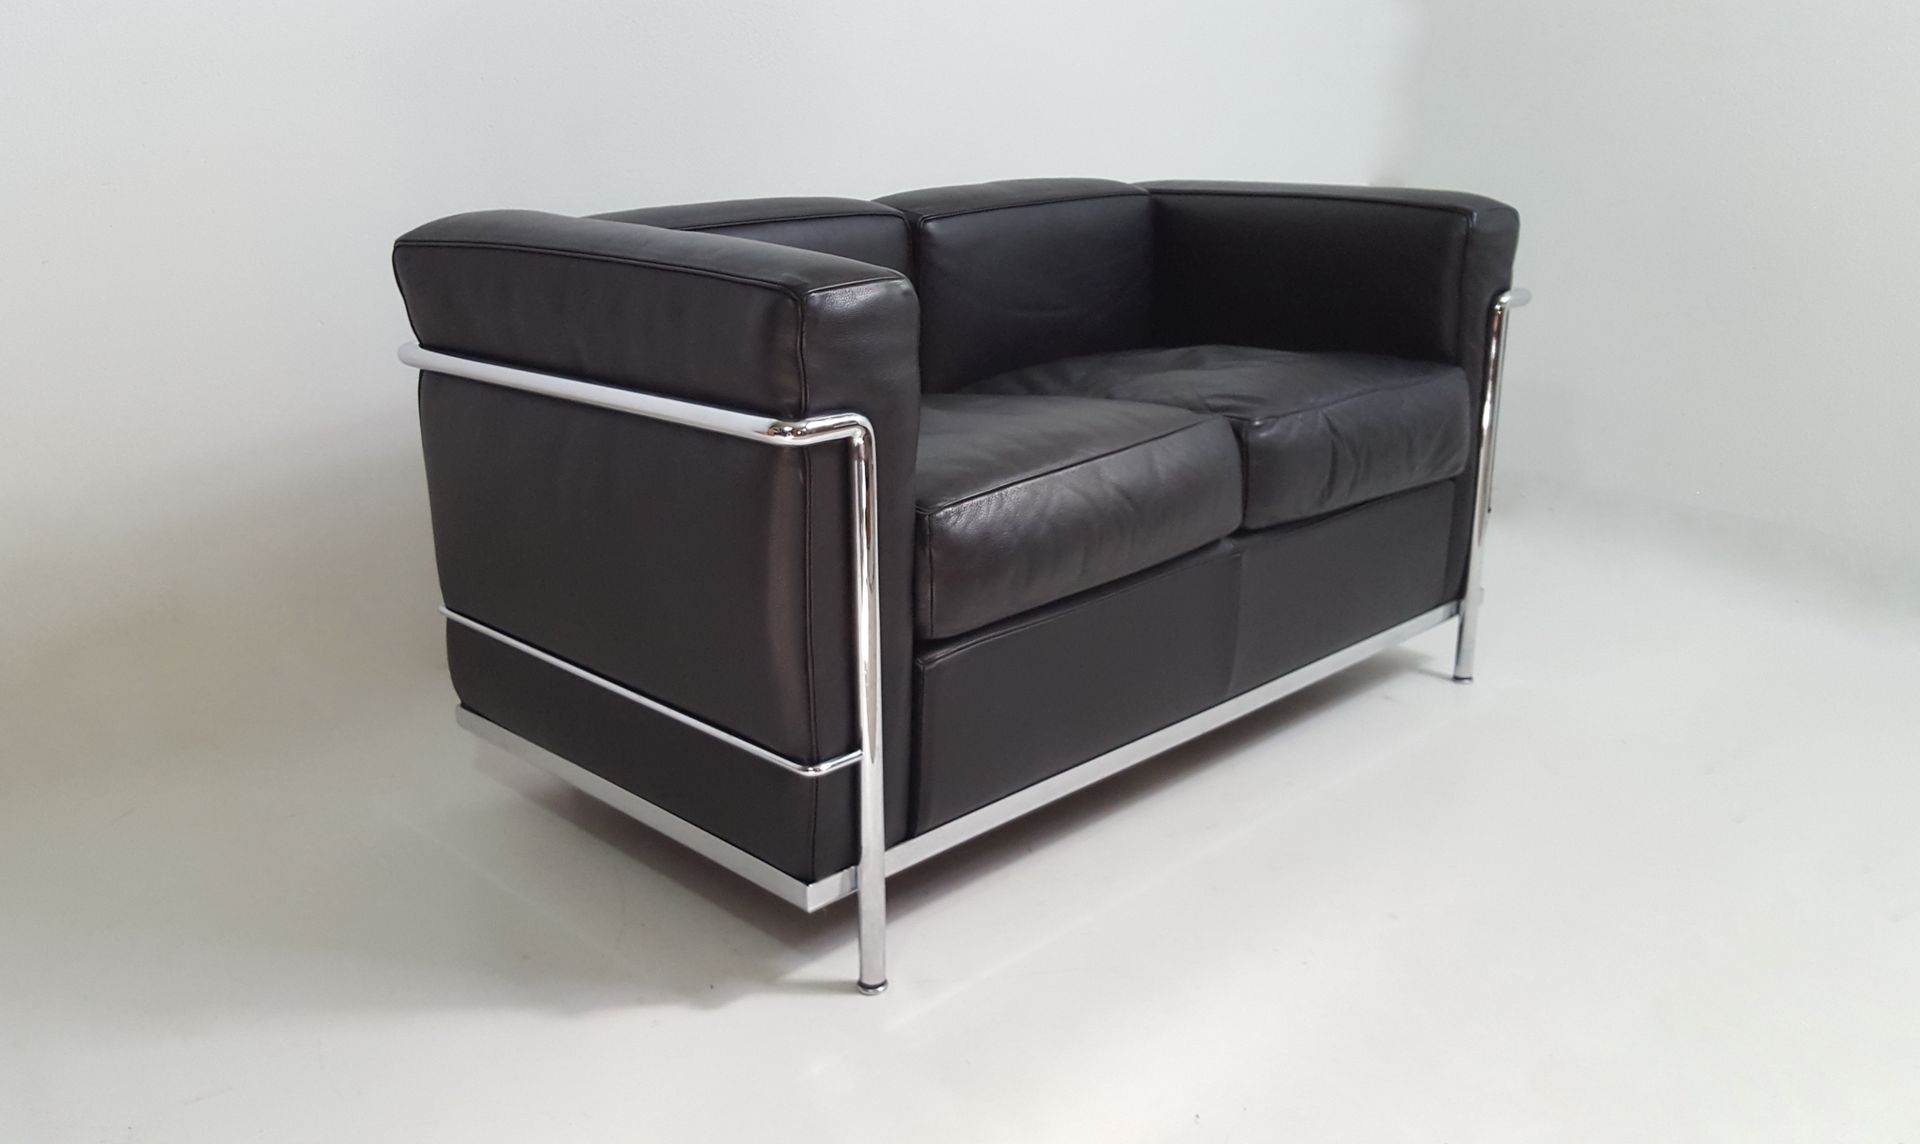 Vintage Lc2 Black Leather Sofa By Le Corbusier For Cassina For Sale At Pamono